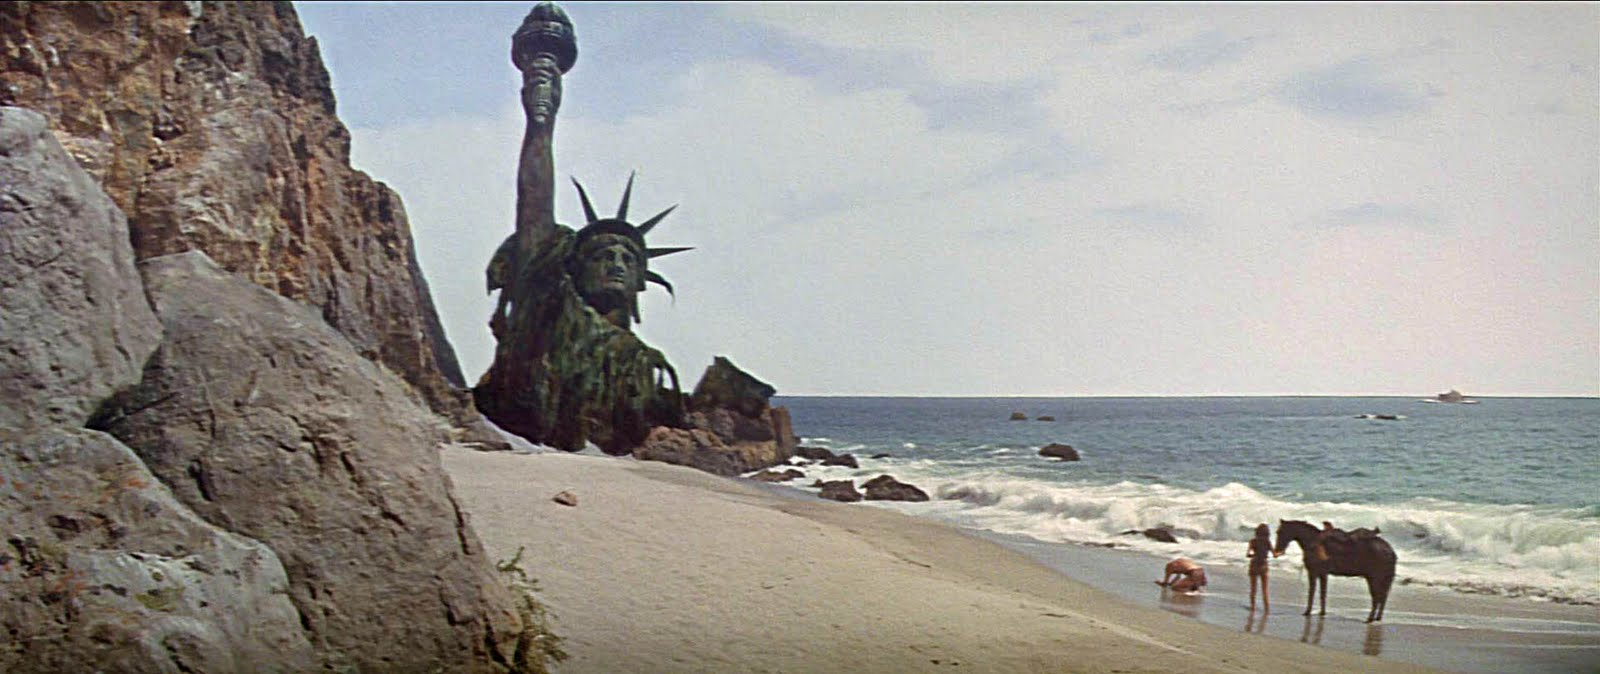 New York, NYcould one day look like a scene from Planet of the Apes after decades of climate change